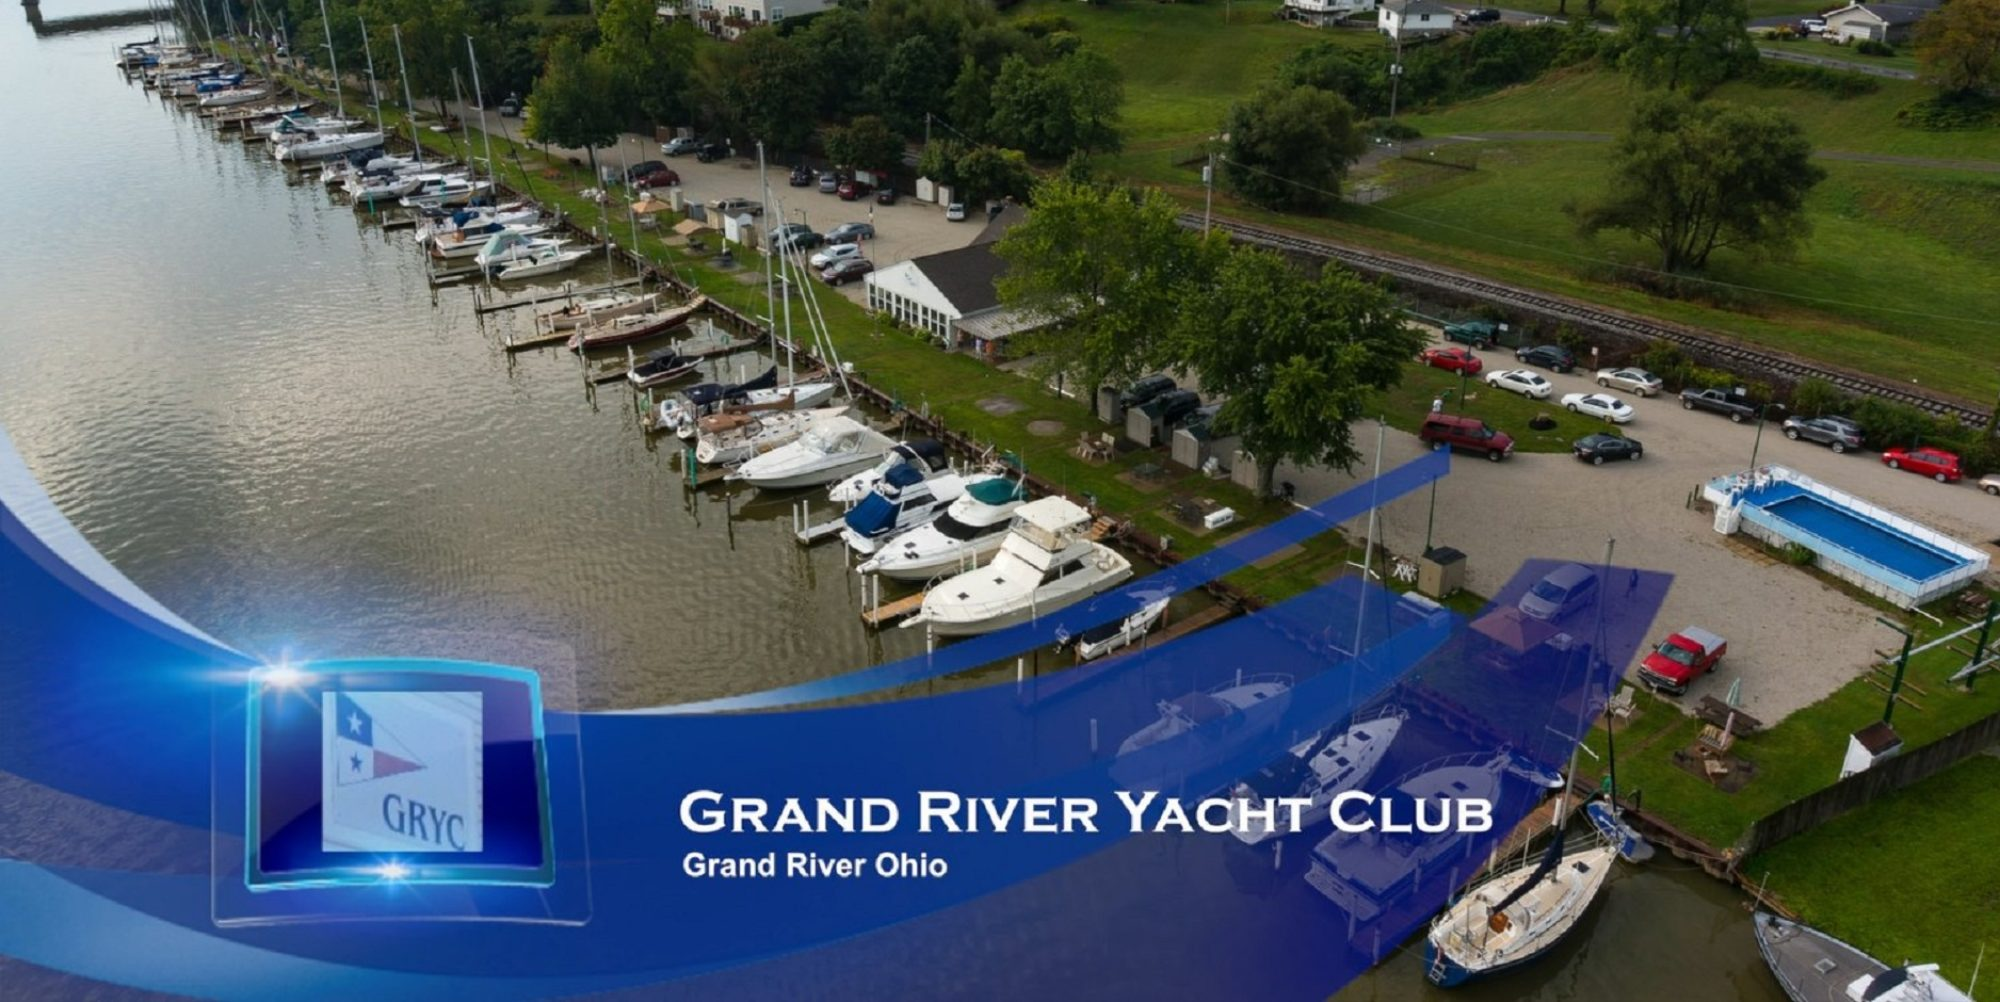 Grand River Yacht Club